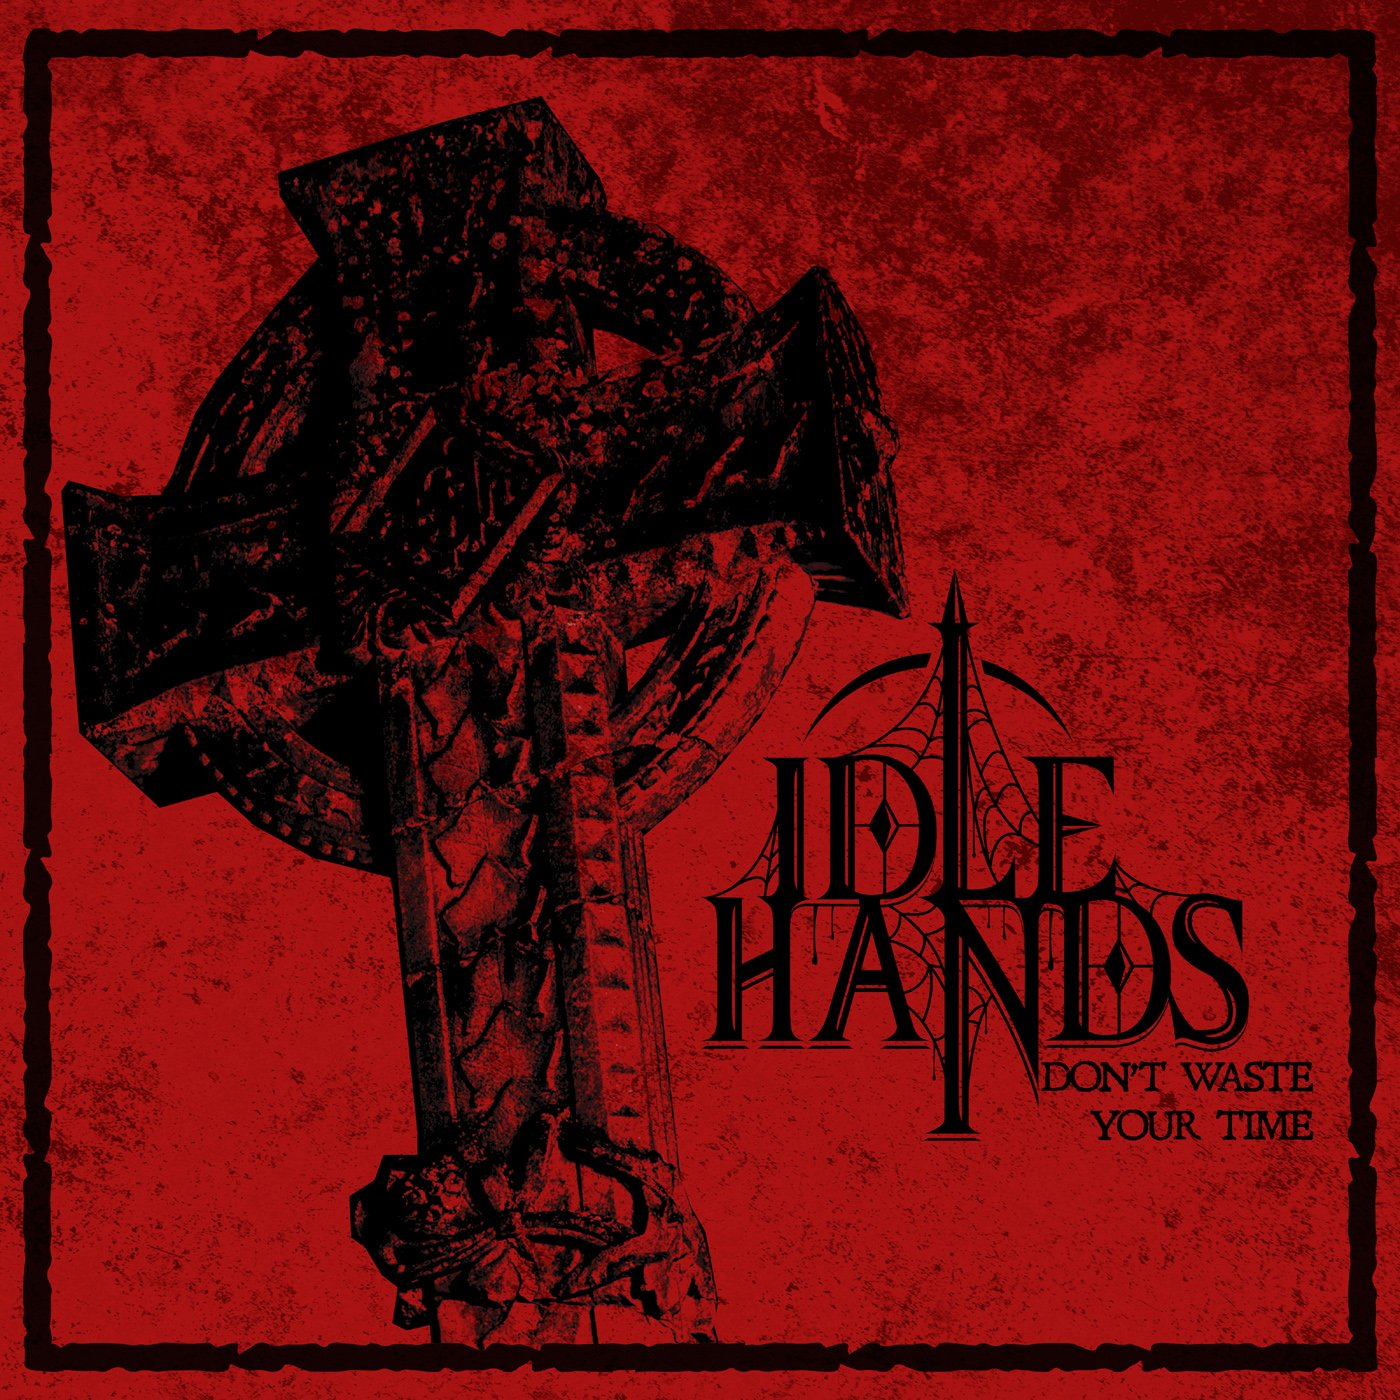 Idle_Hands_Cover[1]